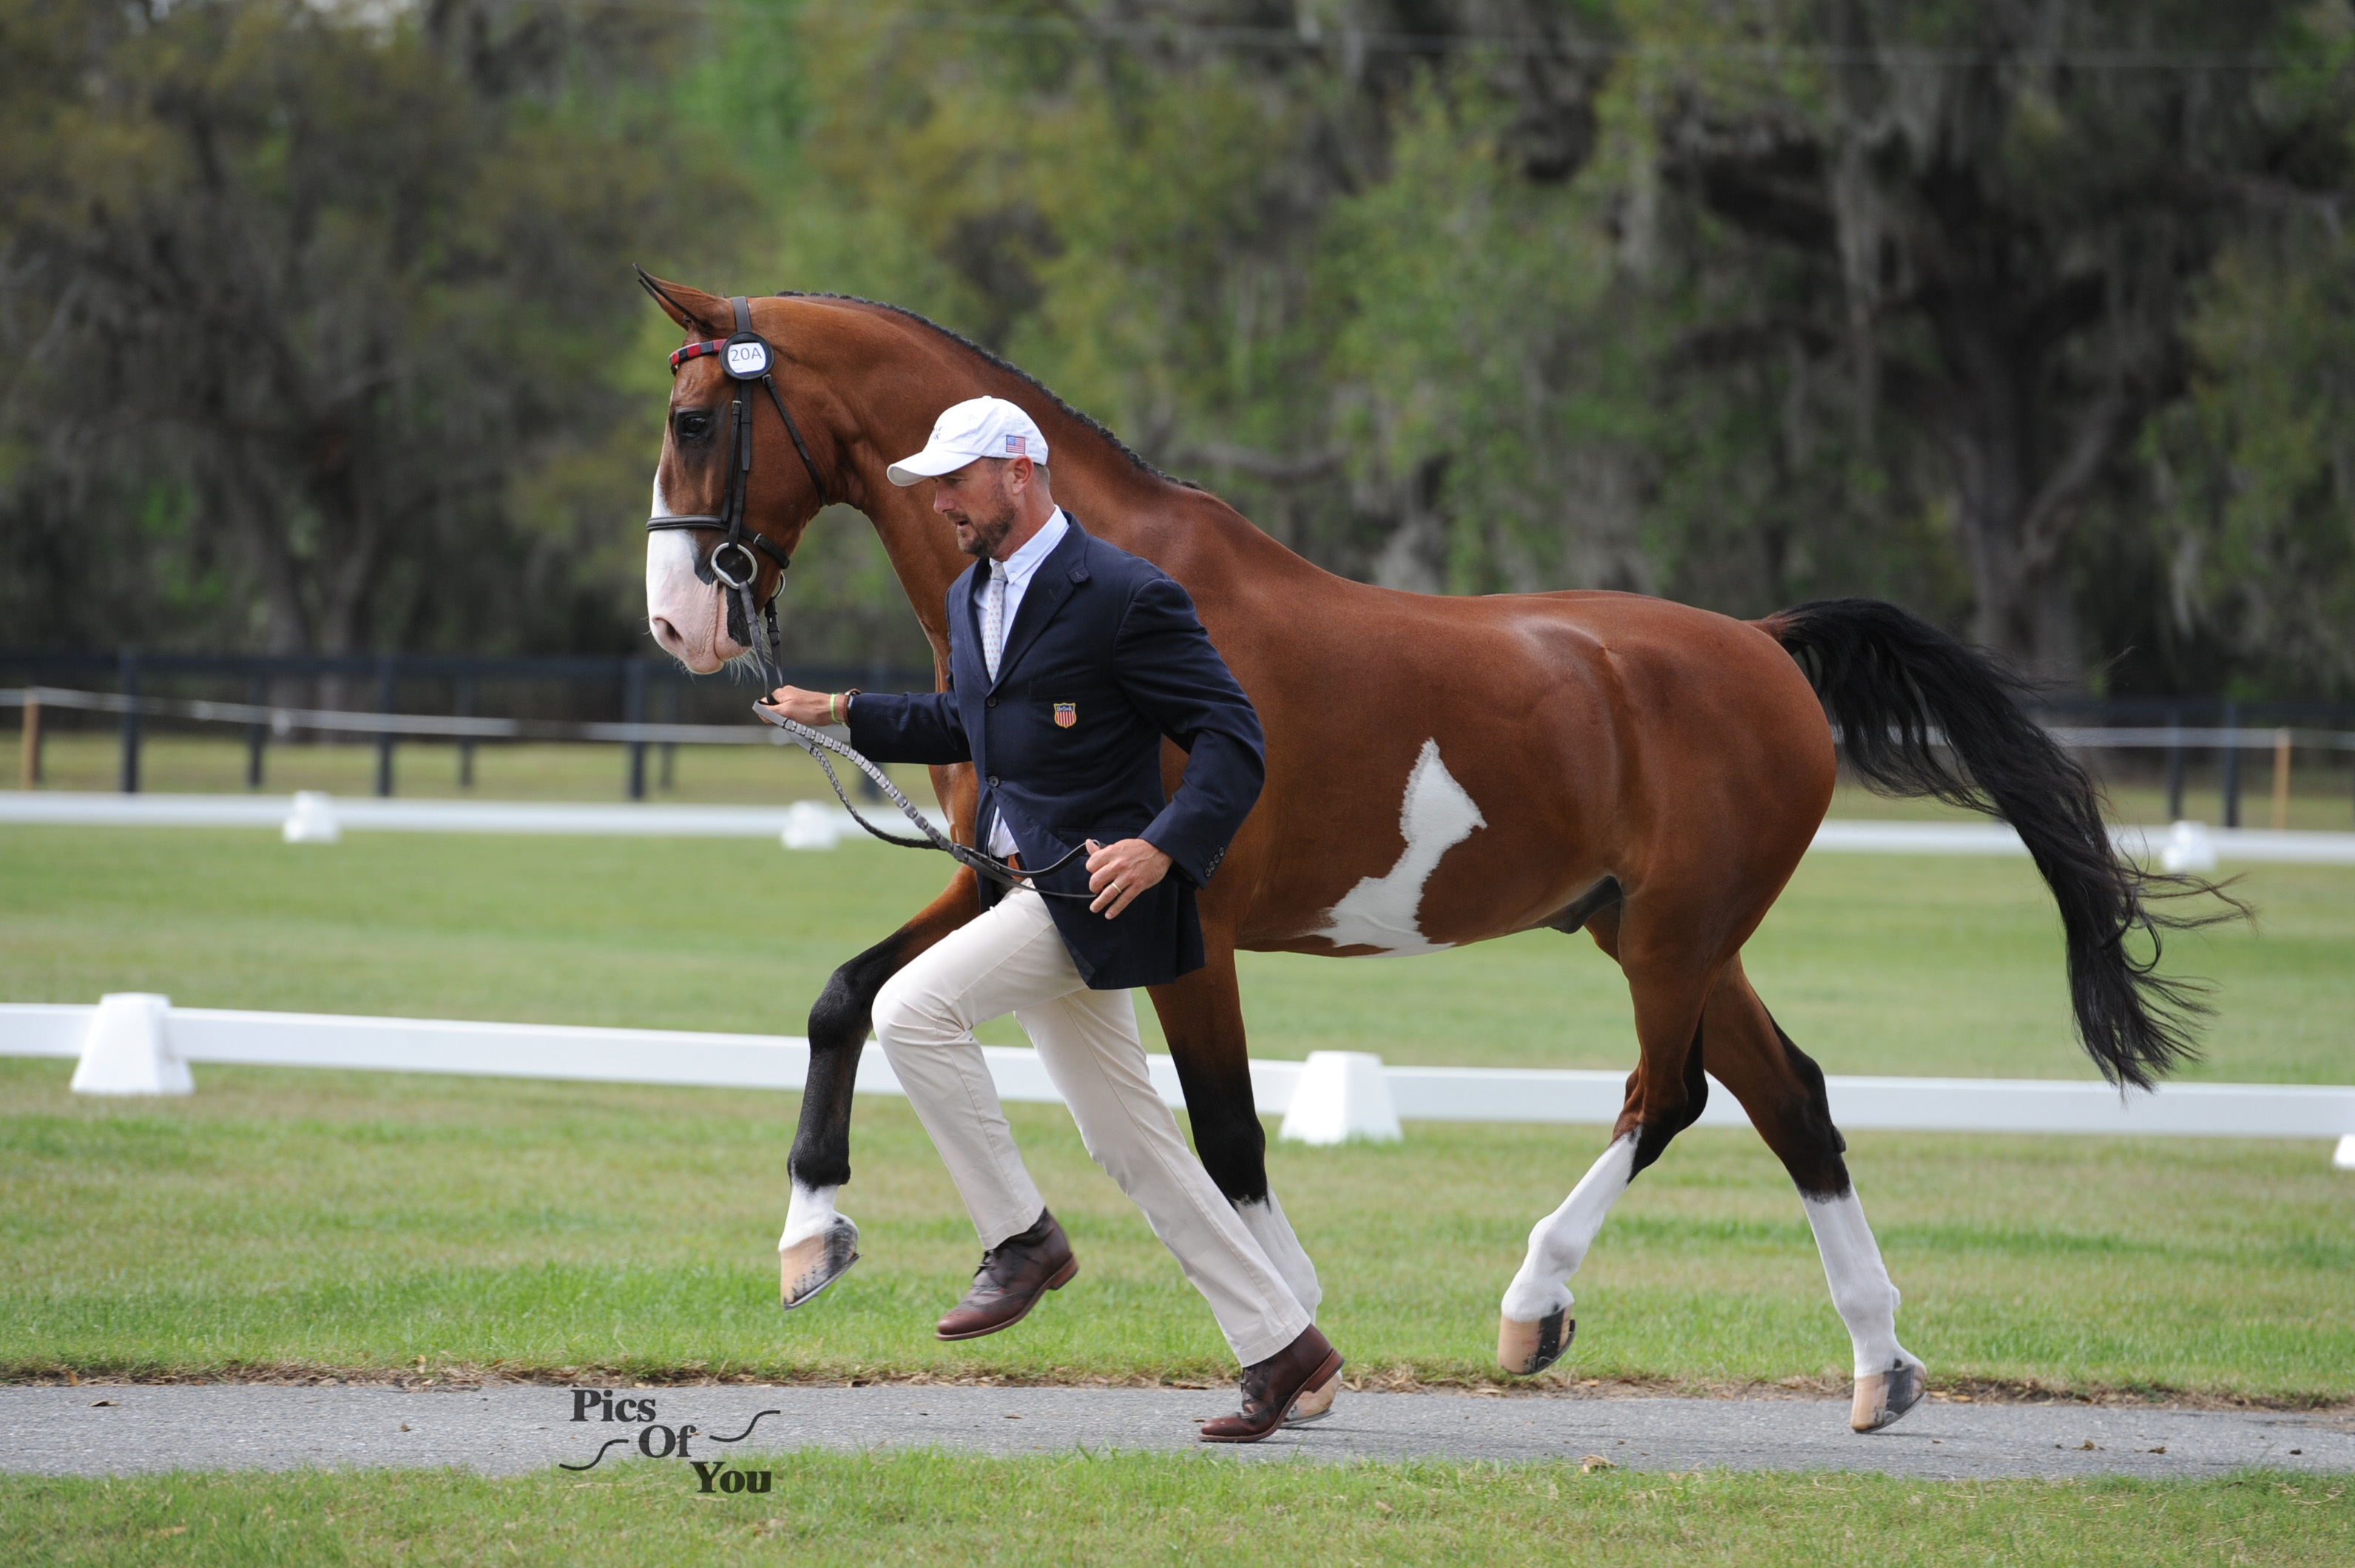 Drivers and Riders Begin Quest for Four USEF Driving Championships And Chance to Qualify for the Longines FEI Show Jumping World Cup Final At Live Oak International